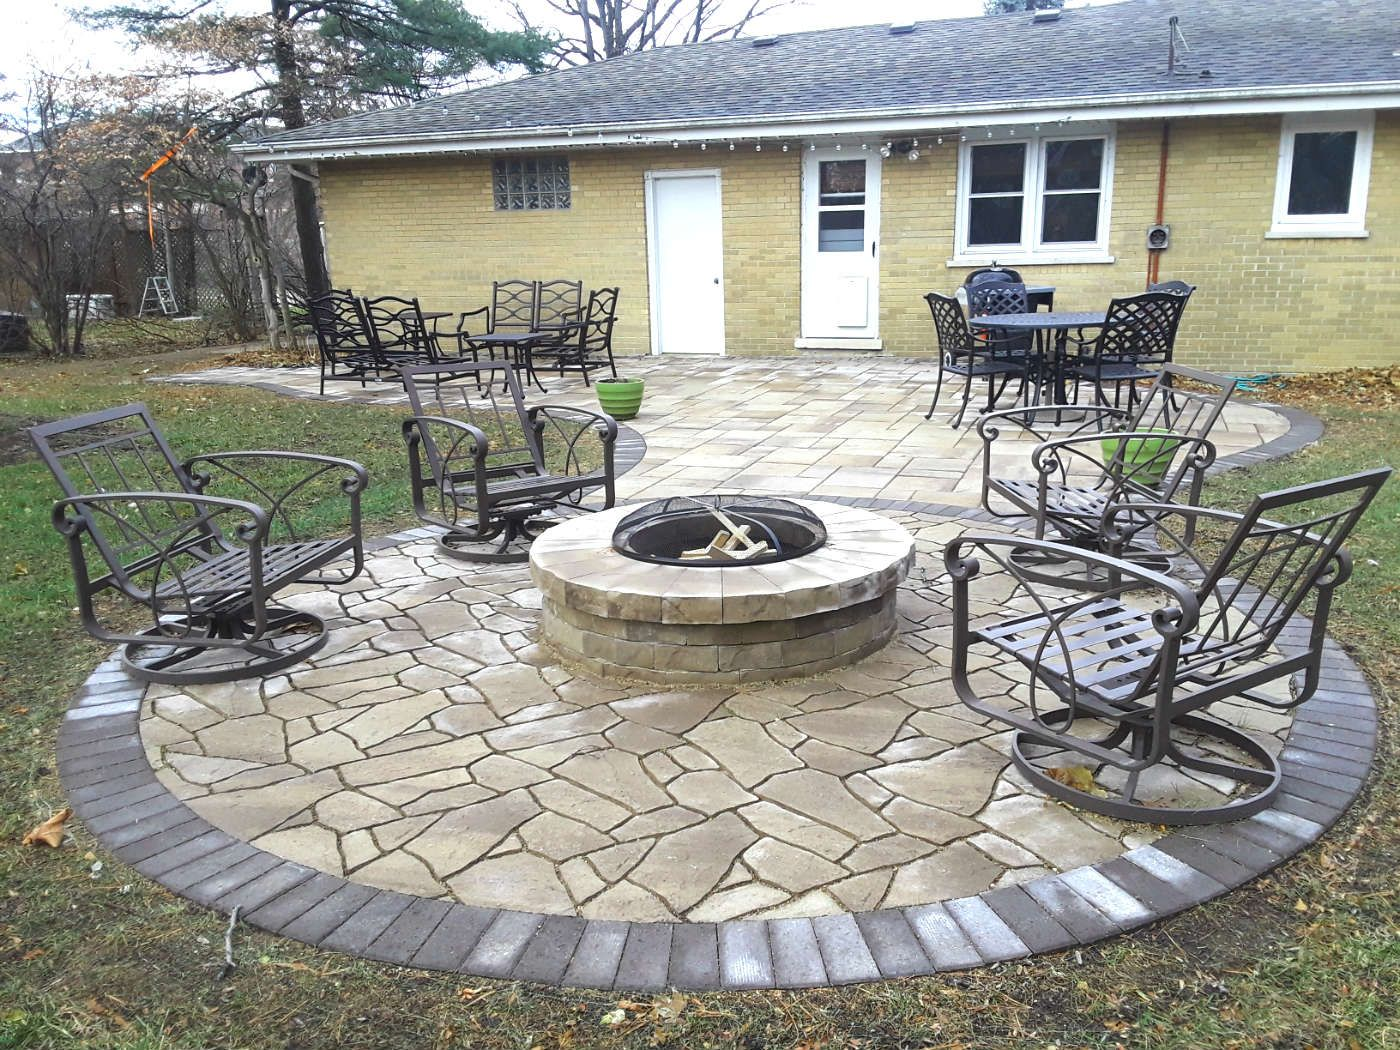 Belgard Paver Patio With Fire Pit Designed By Lombard, IL